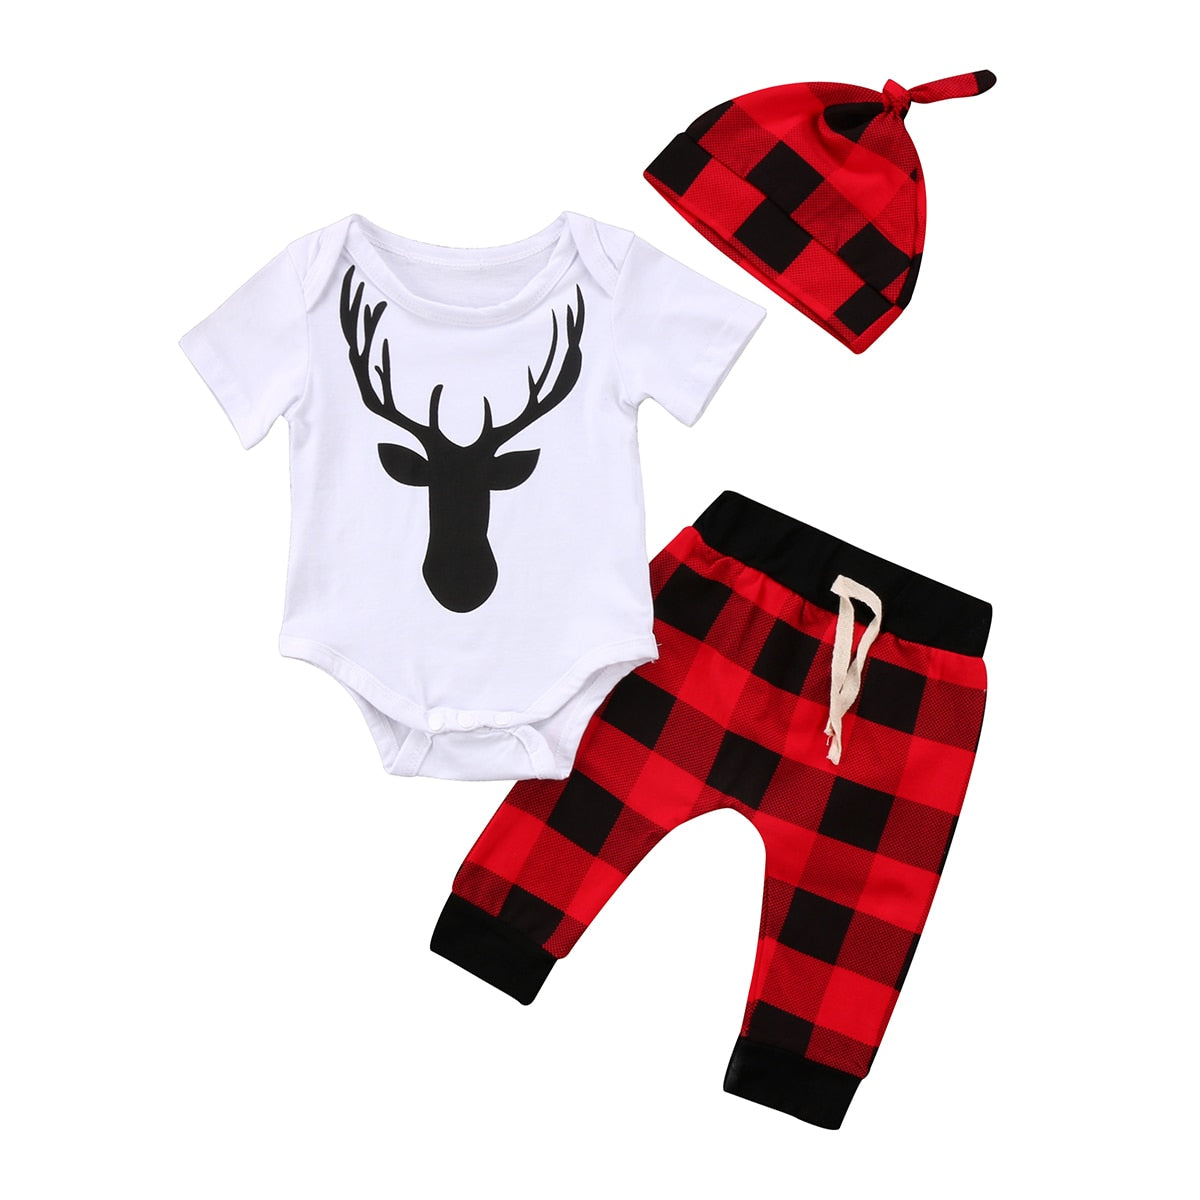 4f5472948 Deer Christmas Newborn Baby Boy Girls Romper Top+Plaid Pants Outfits Xmas  Baby Clothing